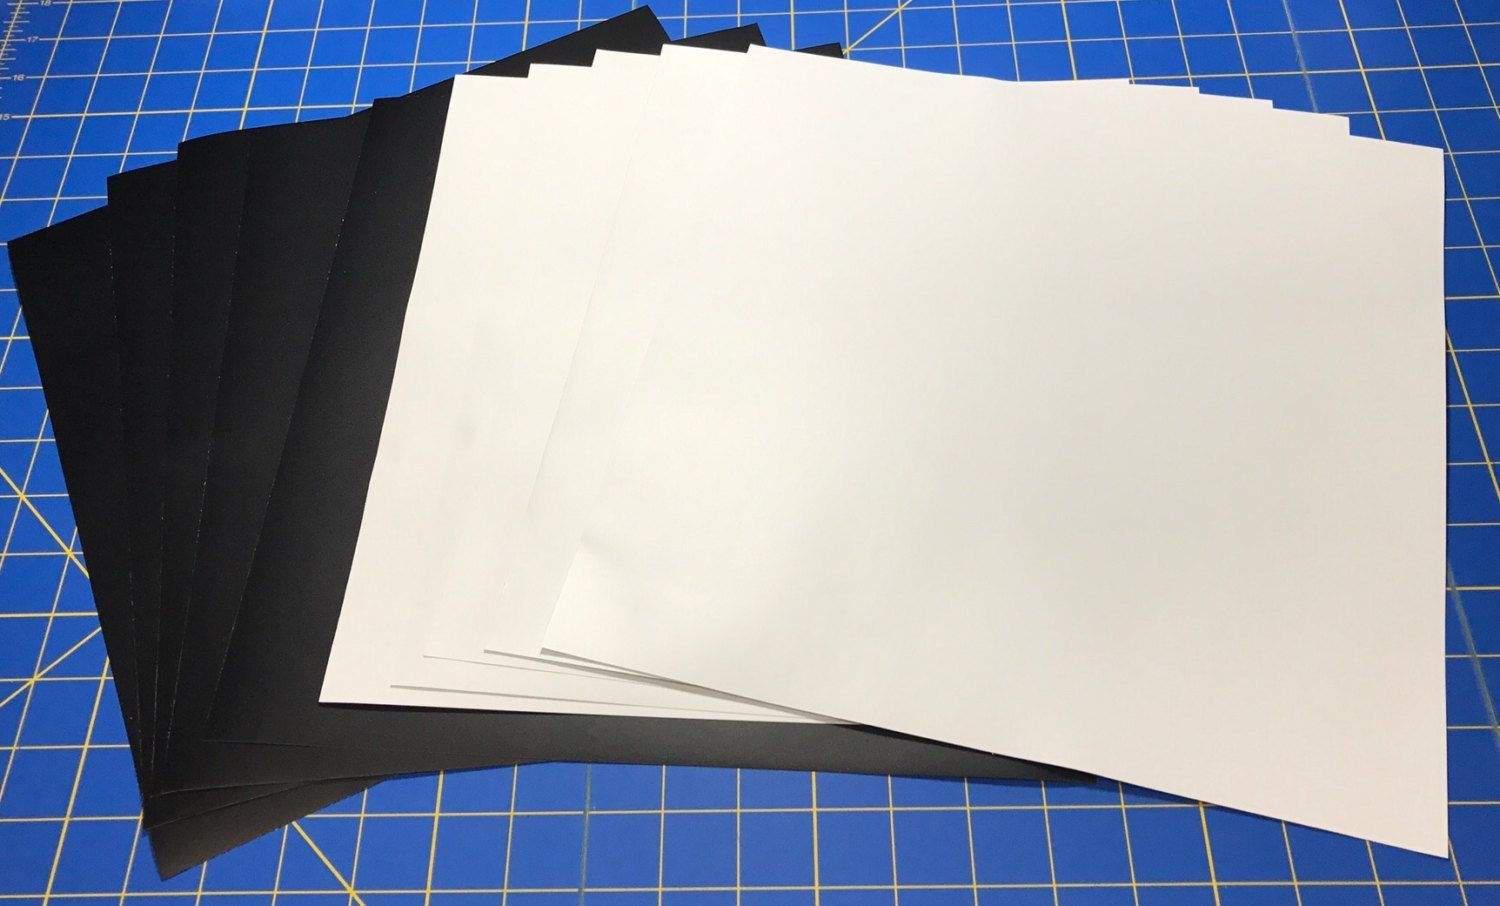 Oracal 631 Removable Adhesive Craft Vinyl Sheets For Cricut Etsy Vinyl Sheets Vinyl Crafts Black Sheets